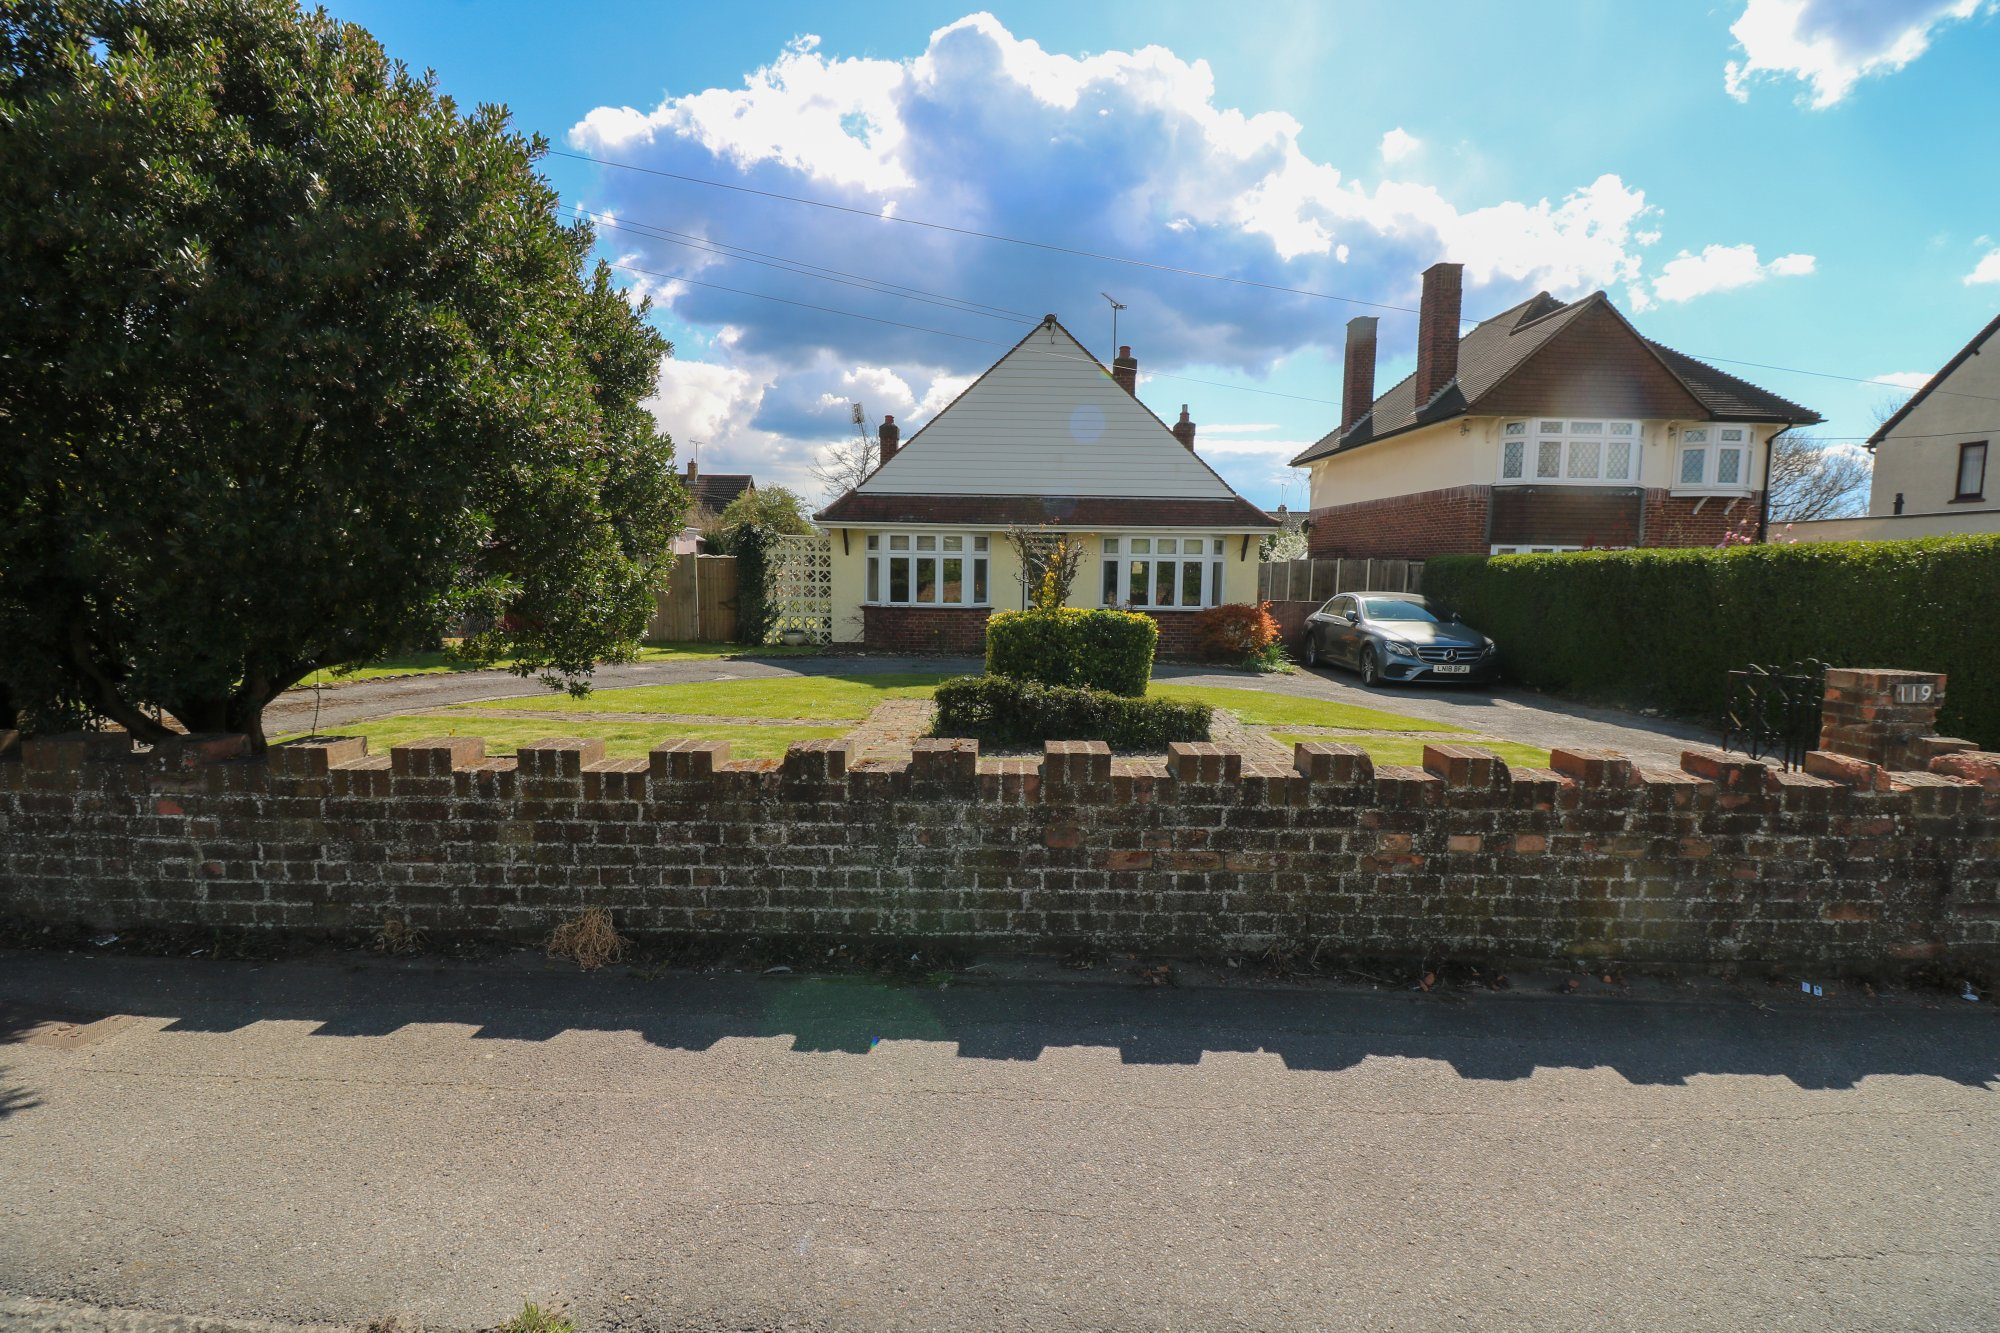 Writtle Road, Writtle, Chelmsford